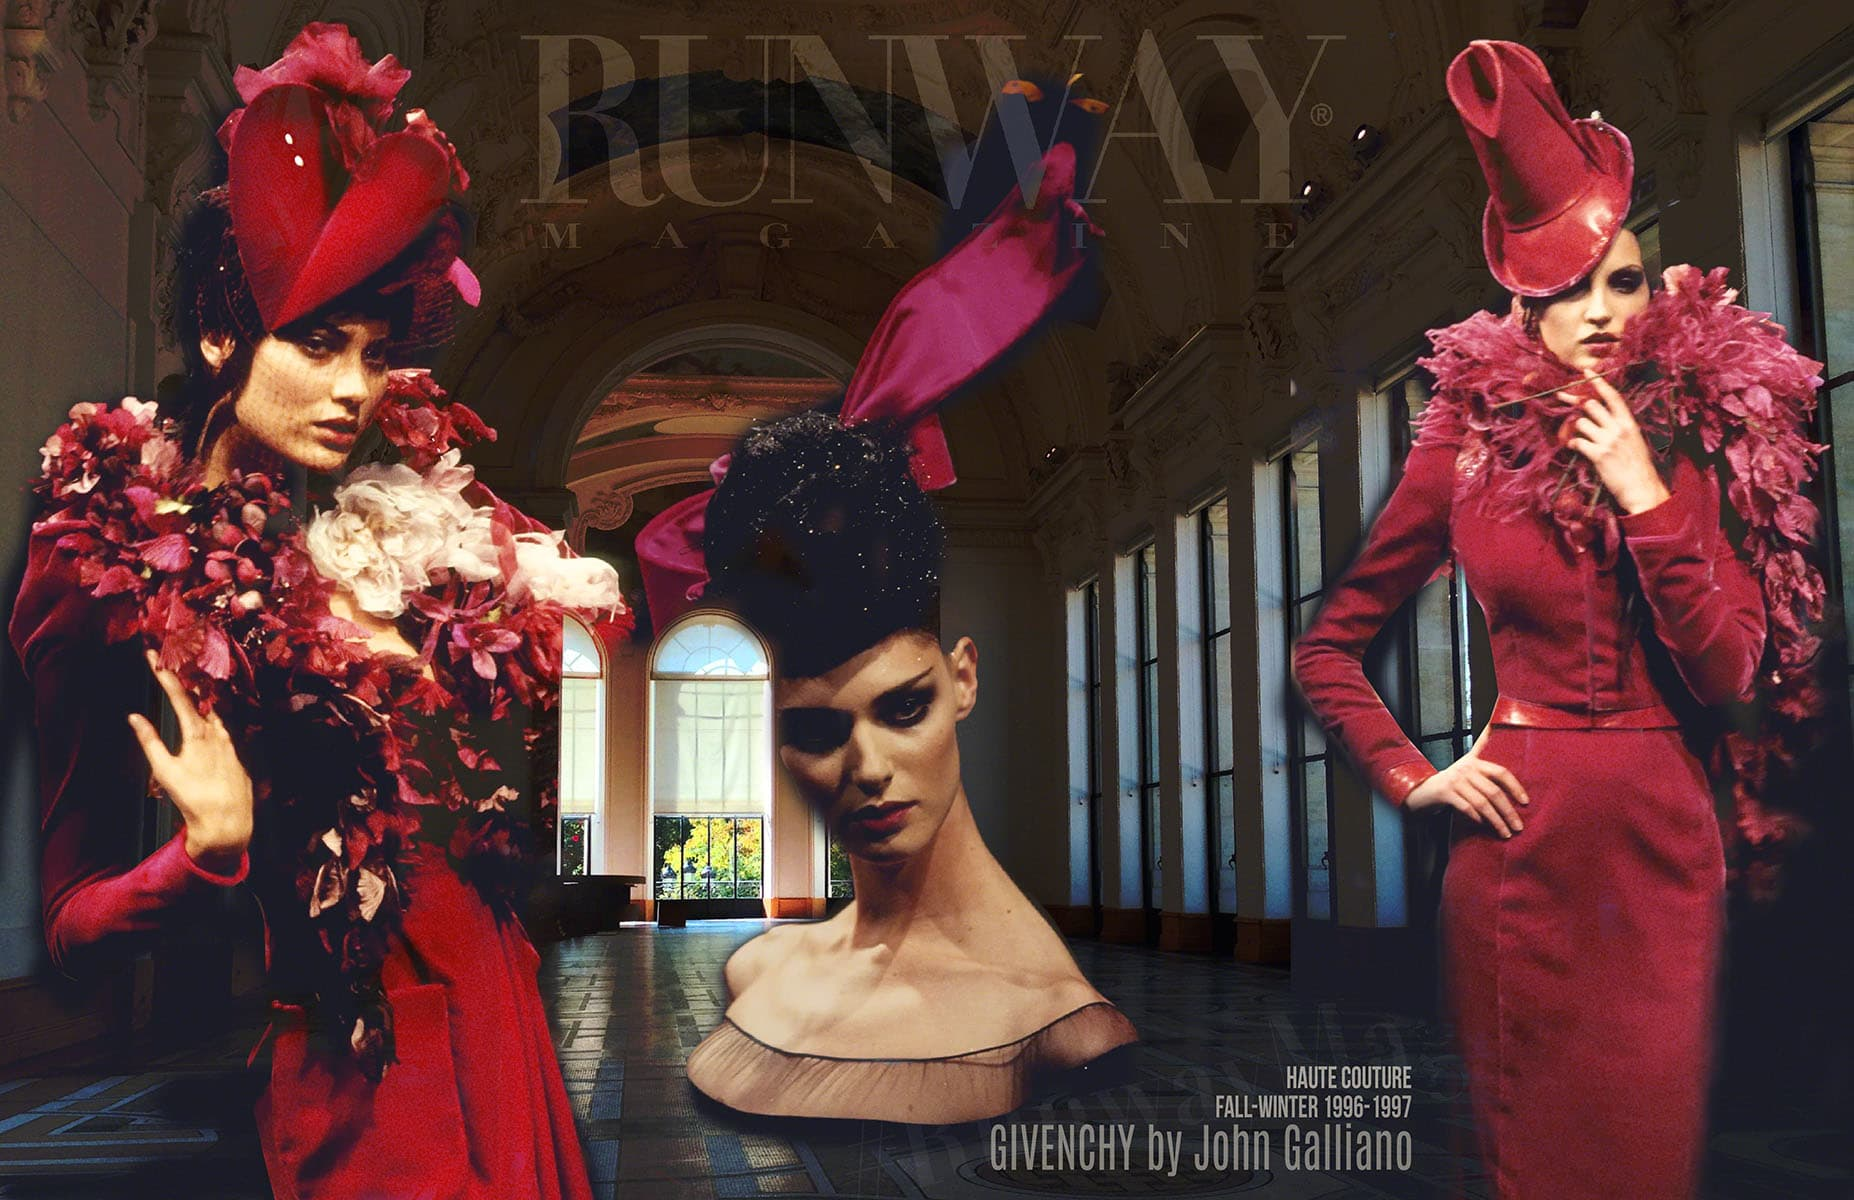 GIVENCHY by JOHN GALLIANO Fall-Winter 1996-1997 Paris by RUNWAY MAGAZINE